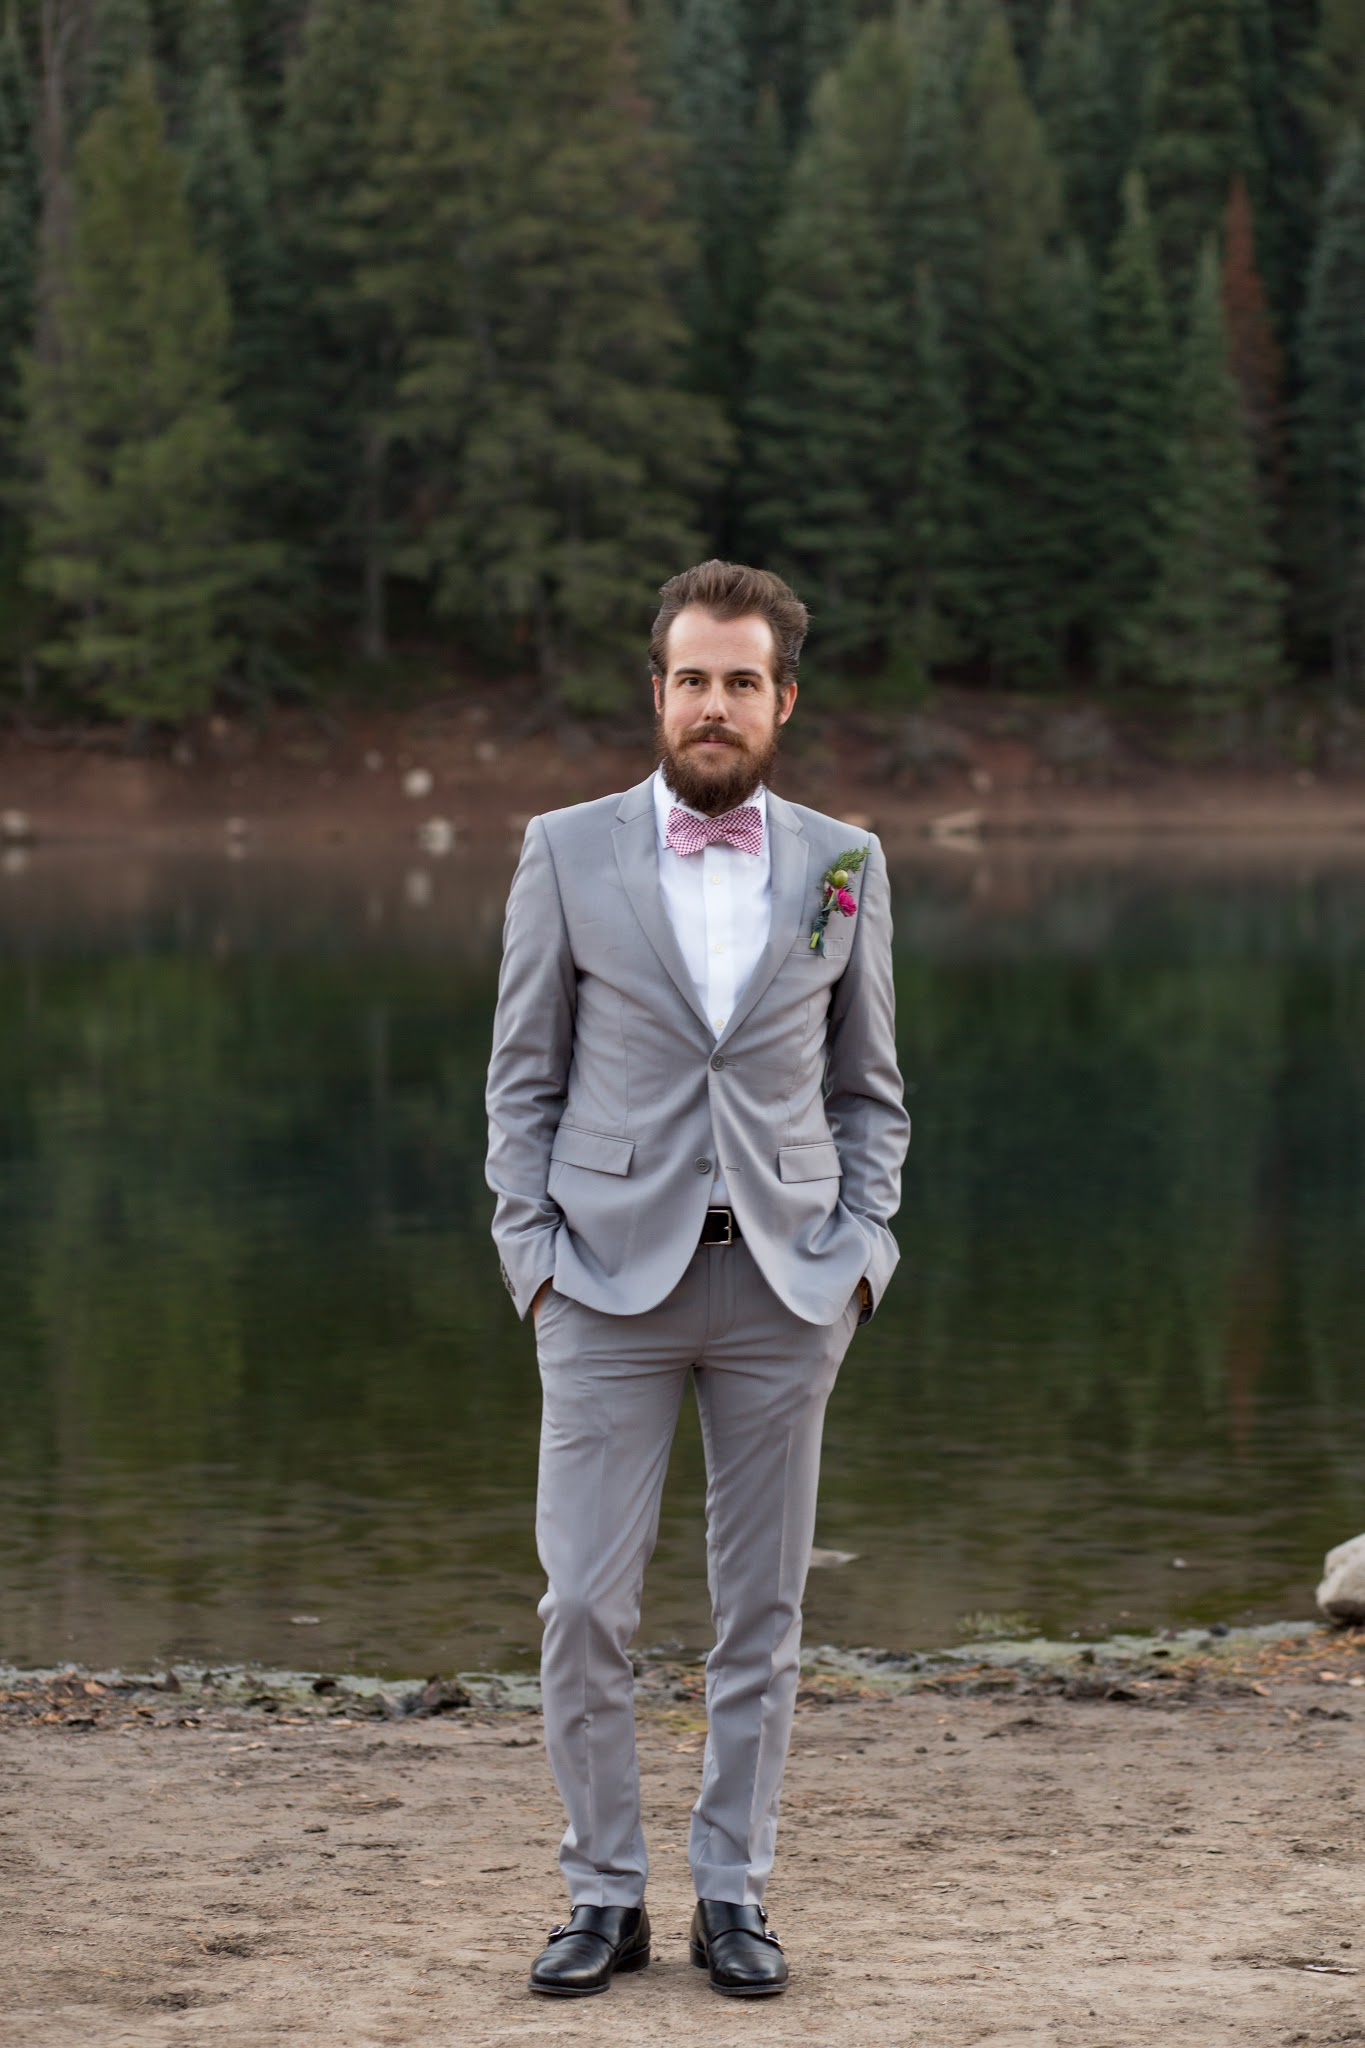 Mens Wedding Style - A Slim Gray Suit